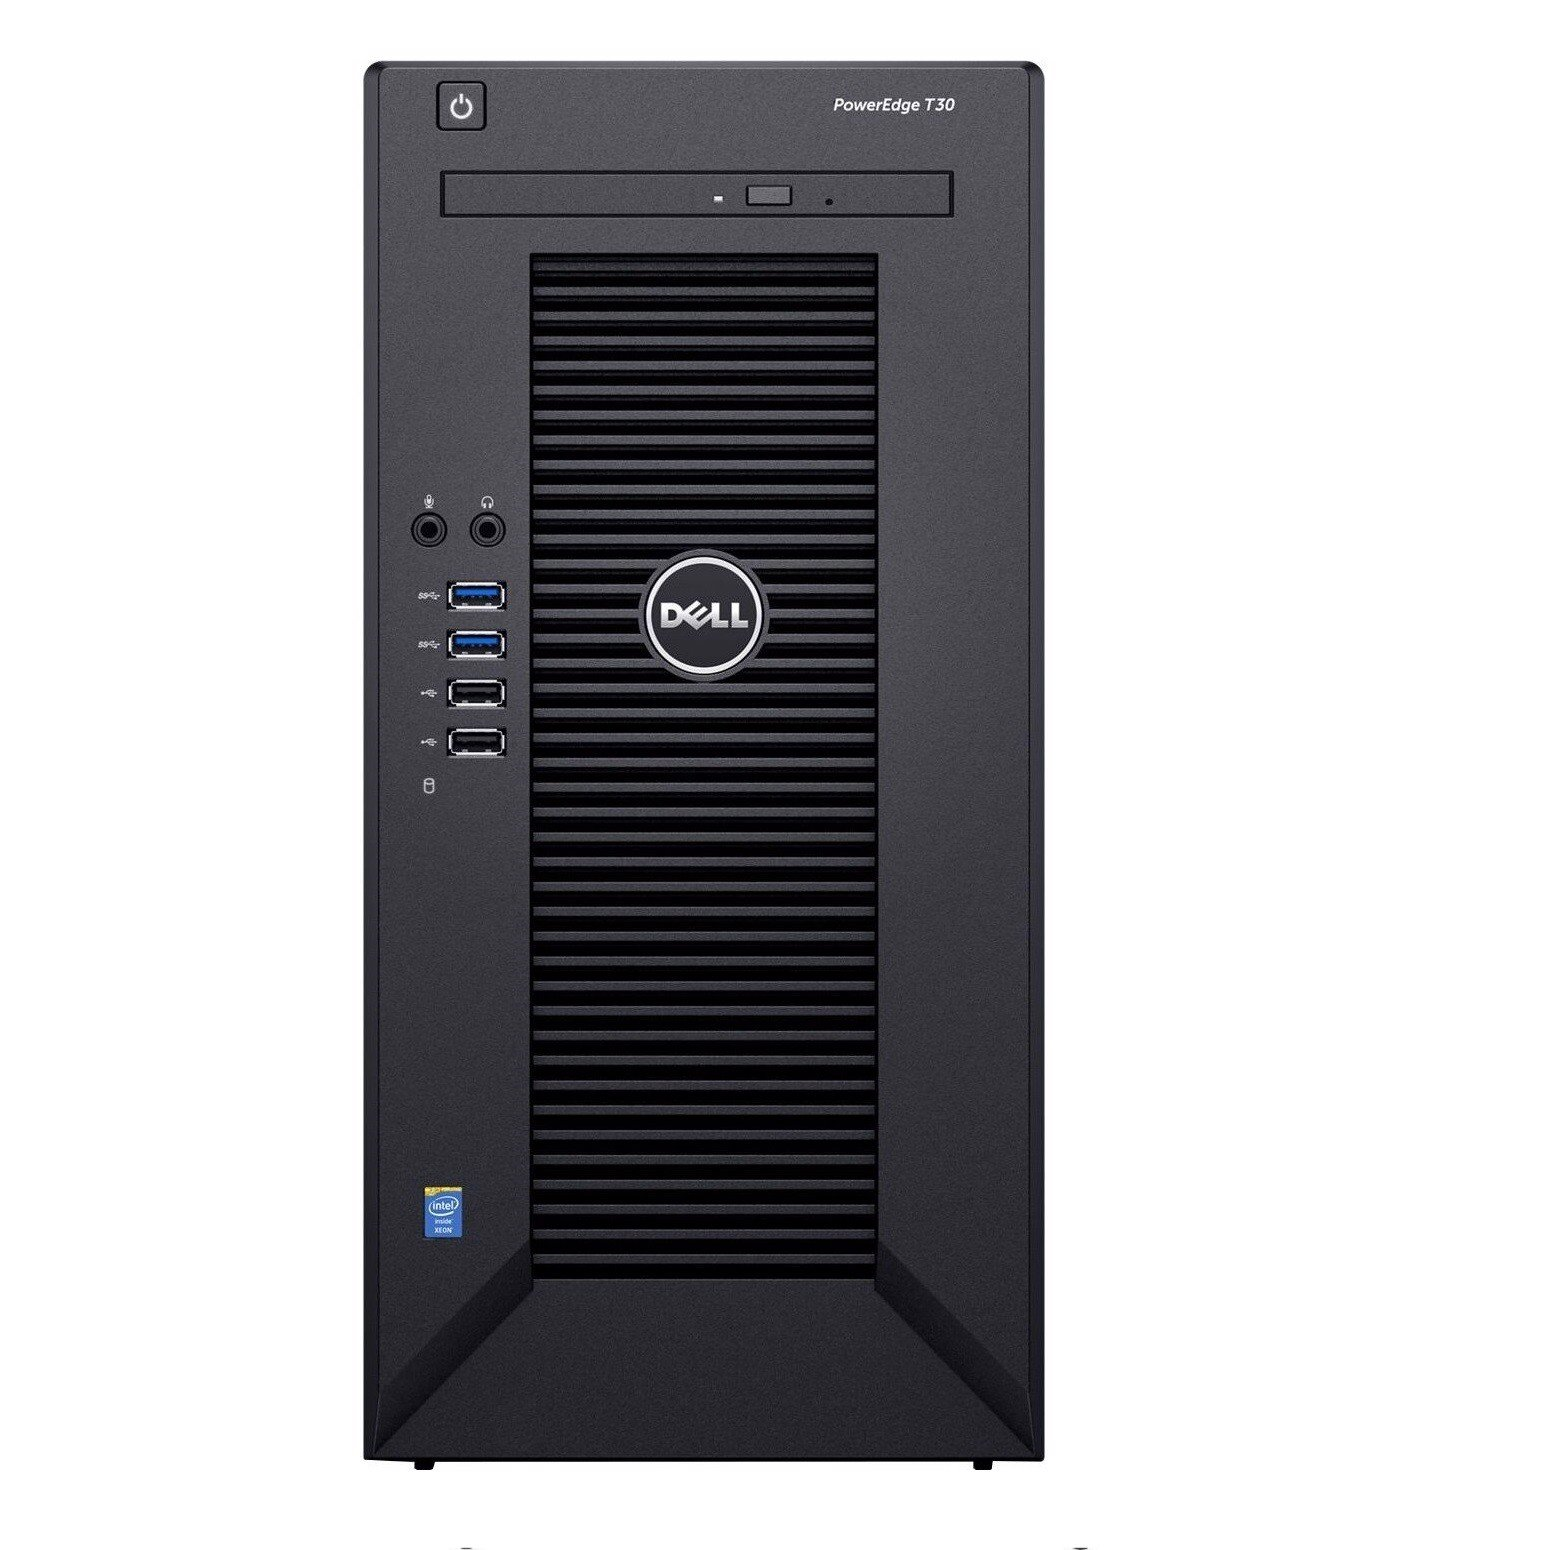 Máy chủ Dell PowerEdge T30